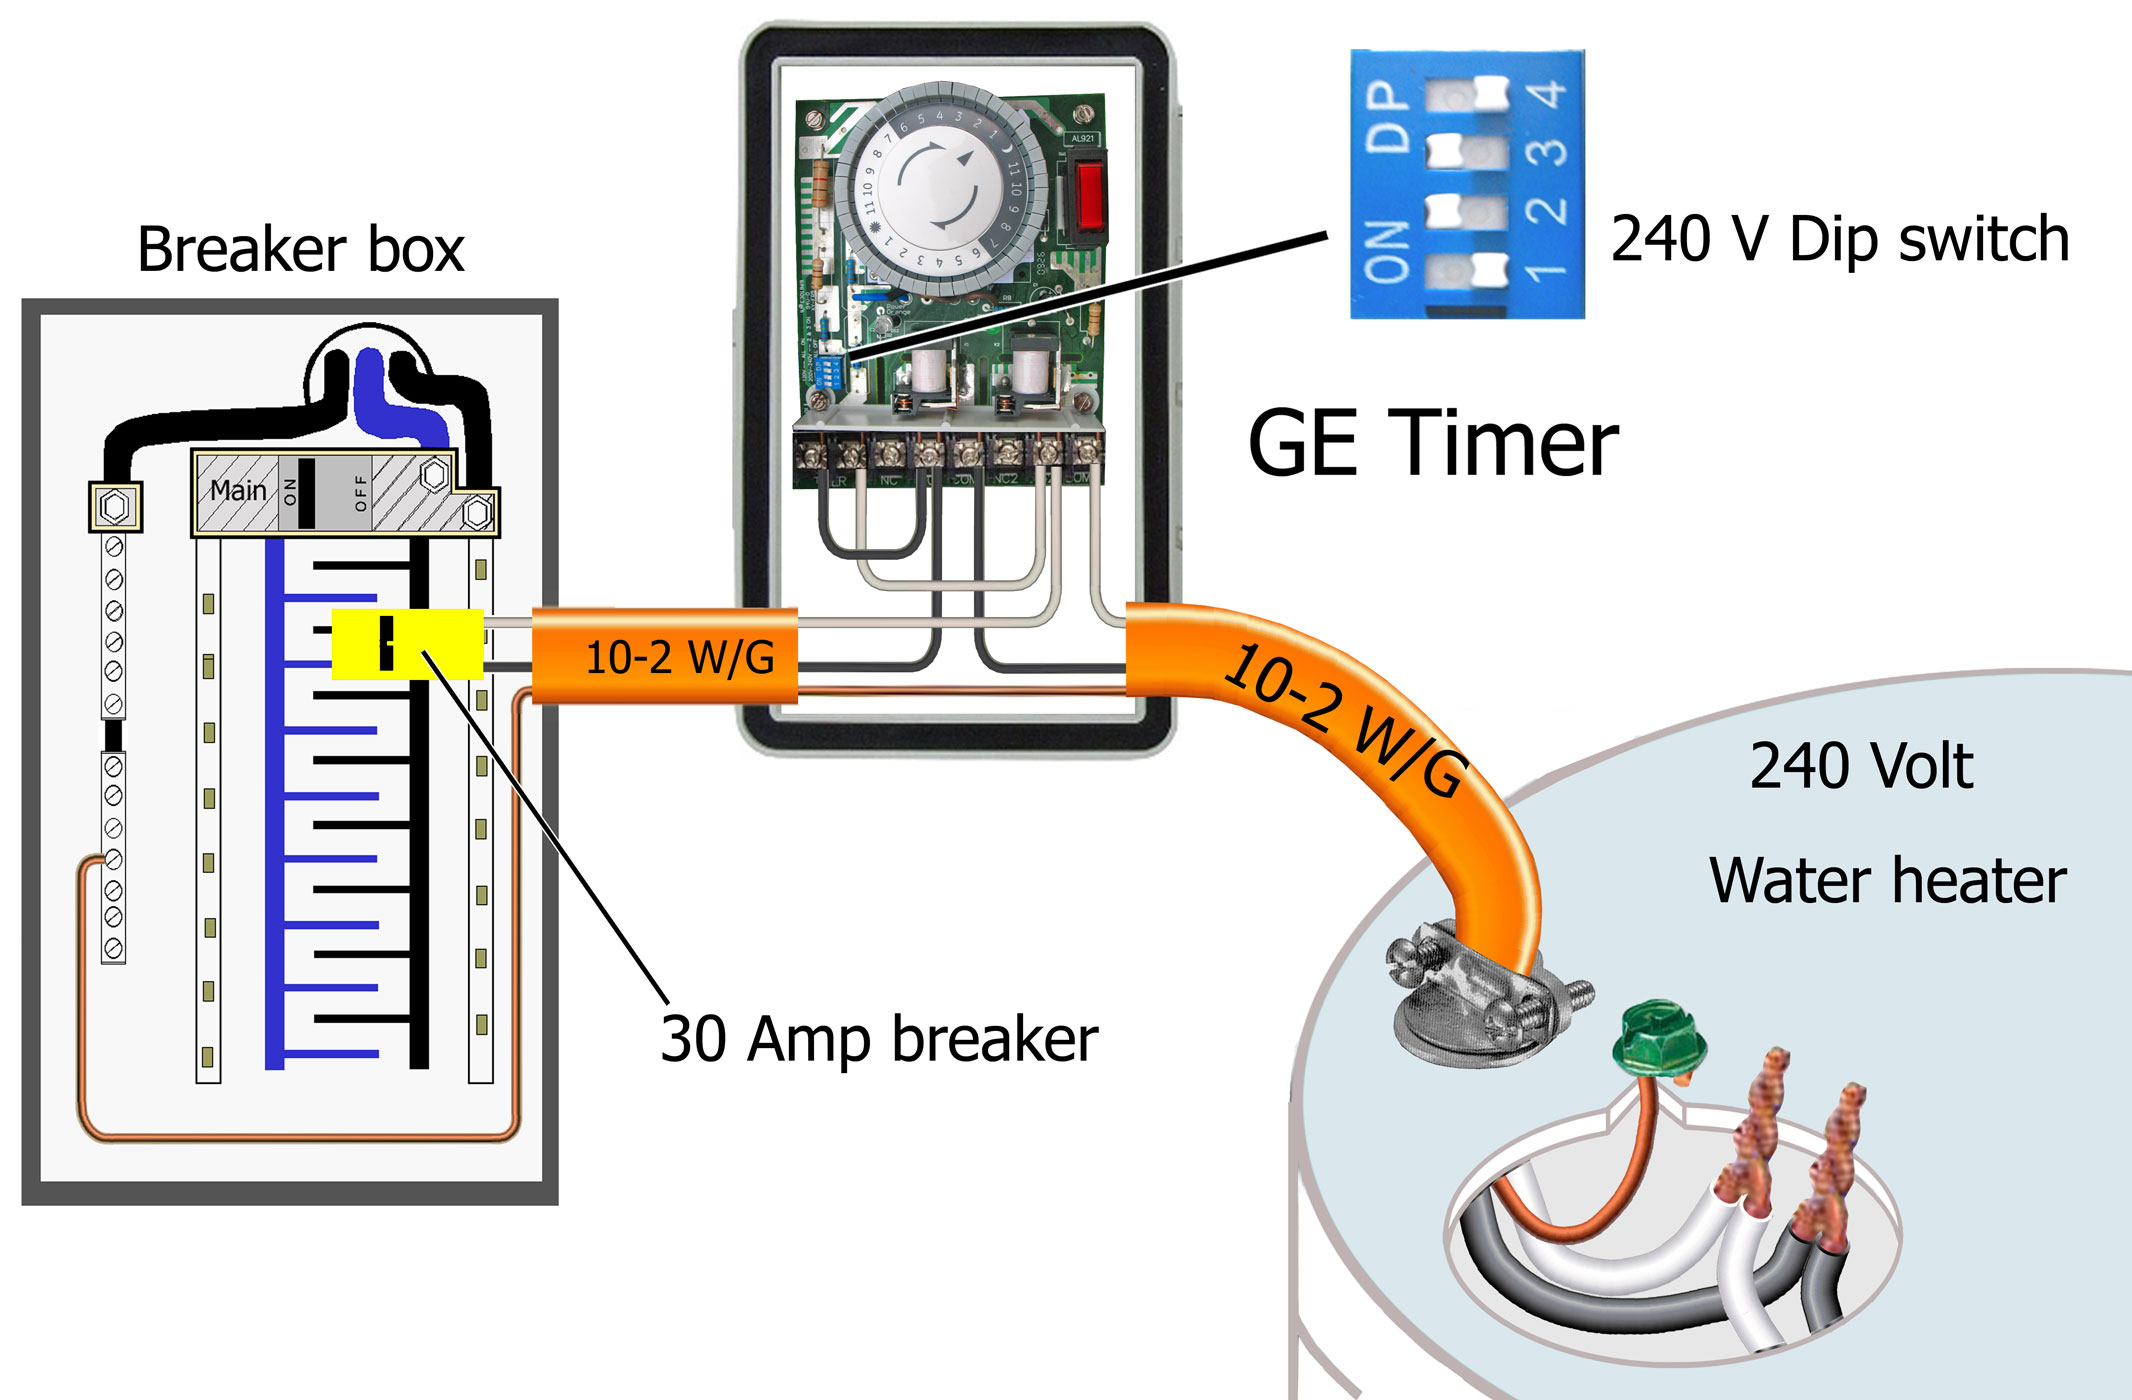 NY_6690] 220 Volt Timer Switch Electrical Handyman Wire Handyman Usa Free  Diagram   Ge Timer Switch Wiring Diagram For 220      Tacle Aeocy Tran Boapu Mohammedshrine Librar Wiring 101